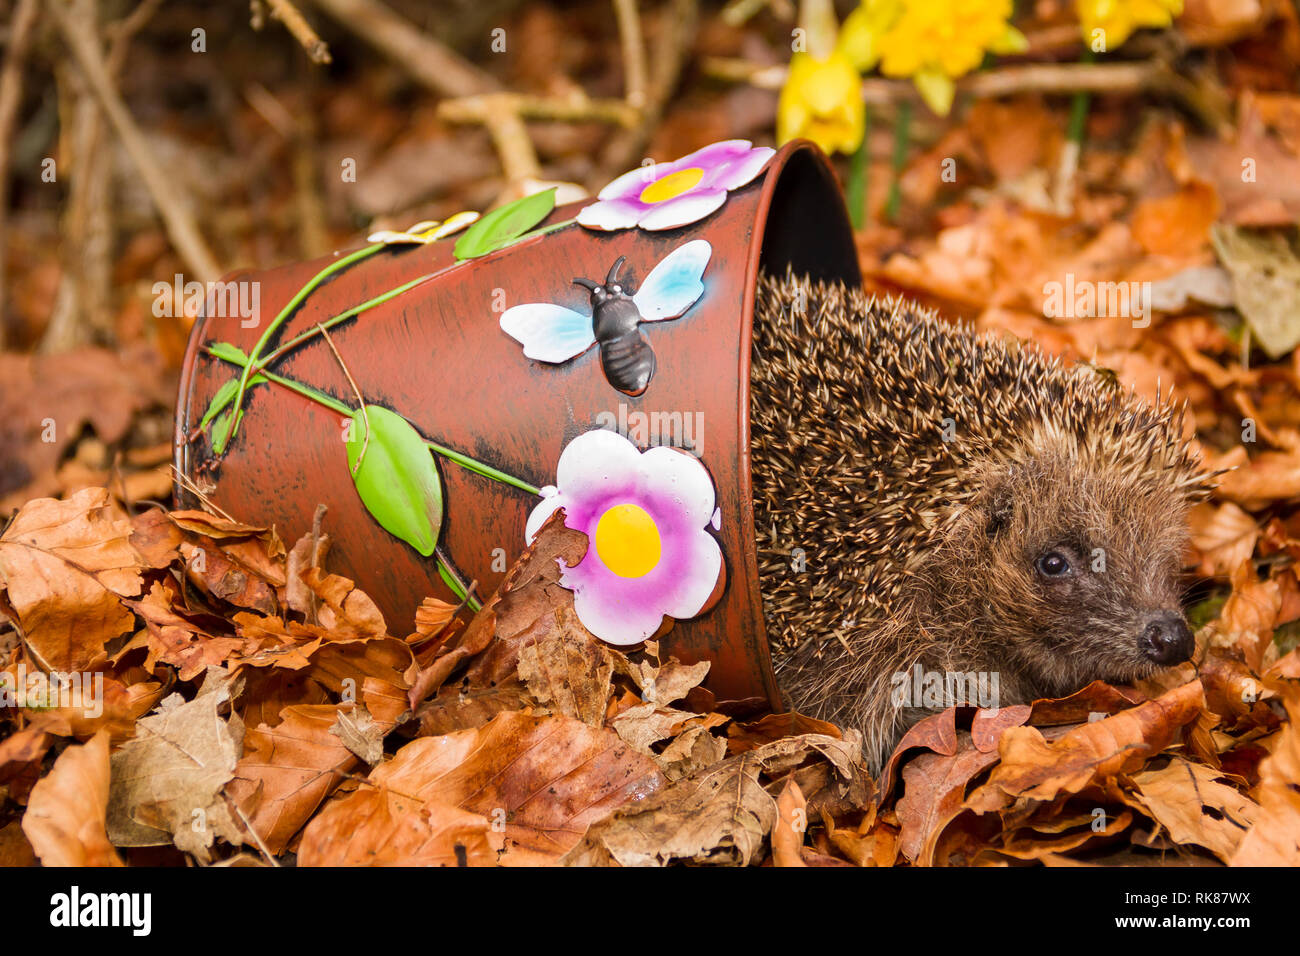 Hedgehog, (Scientific name:  Erinaceus Europaeus) wild, native, European hedgehog in Autumn on fall peeping out of a colourful plant pot.  Landscape - Stock Image